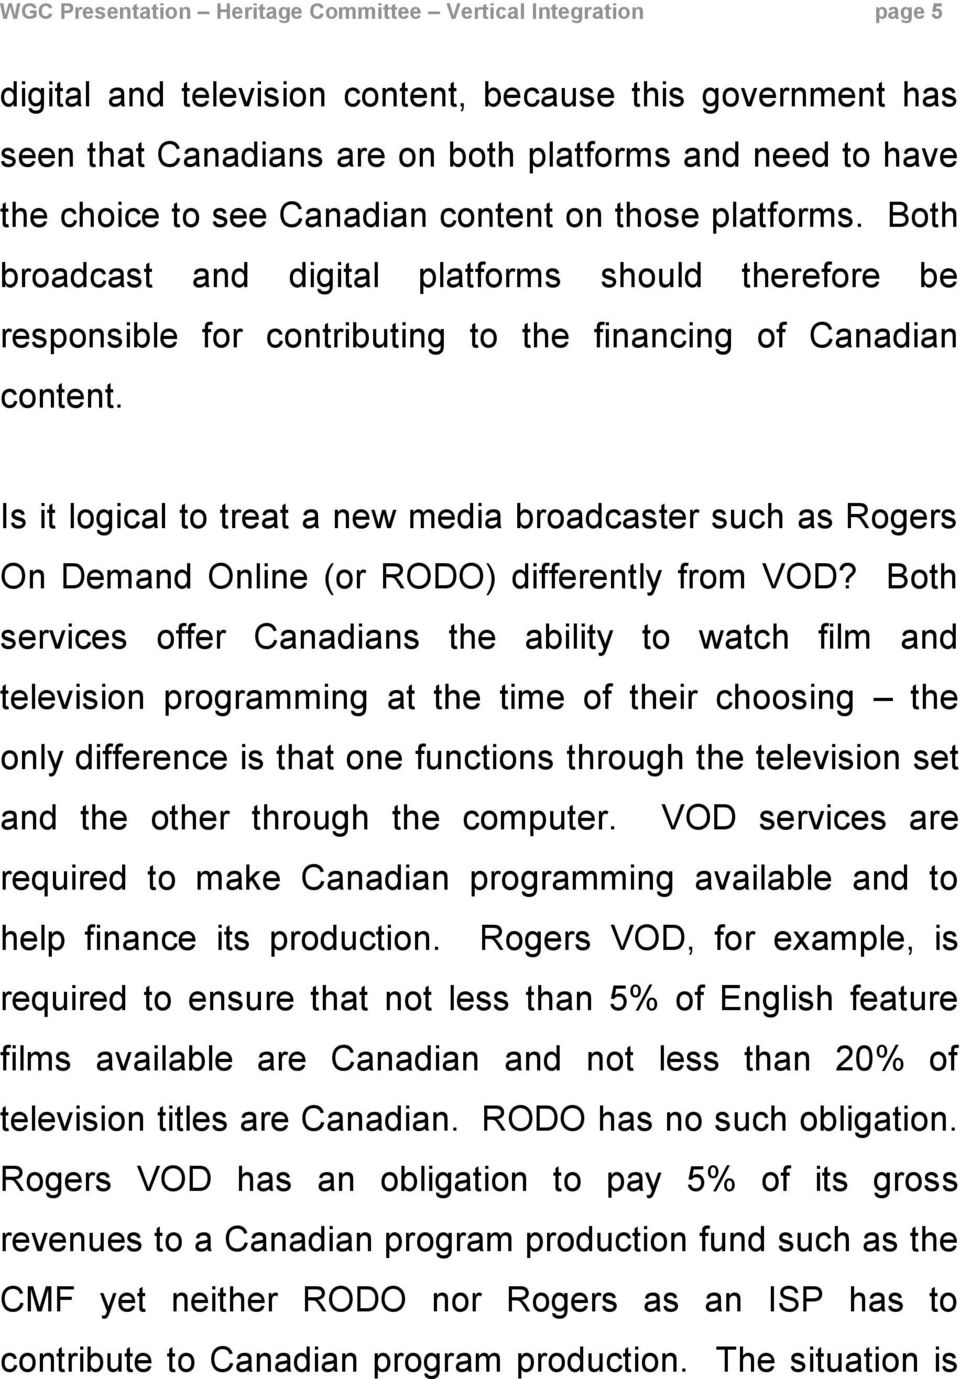 Is it logical to treat a new media broadcaster such as Rogers On Demand Online (or RODO) differently from VOD?